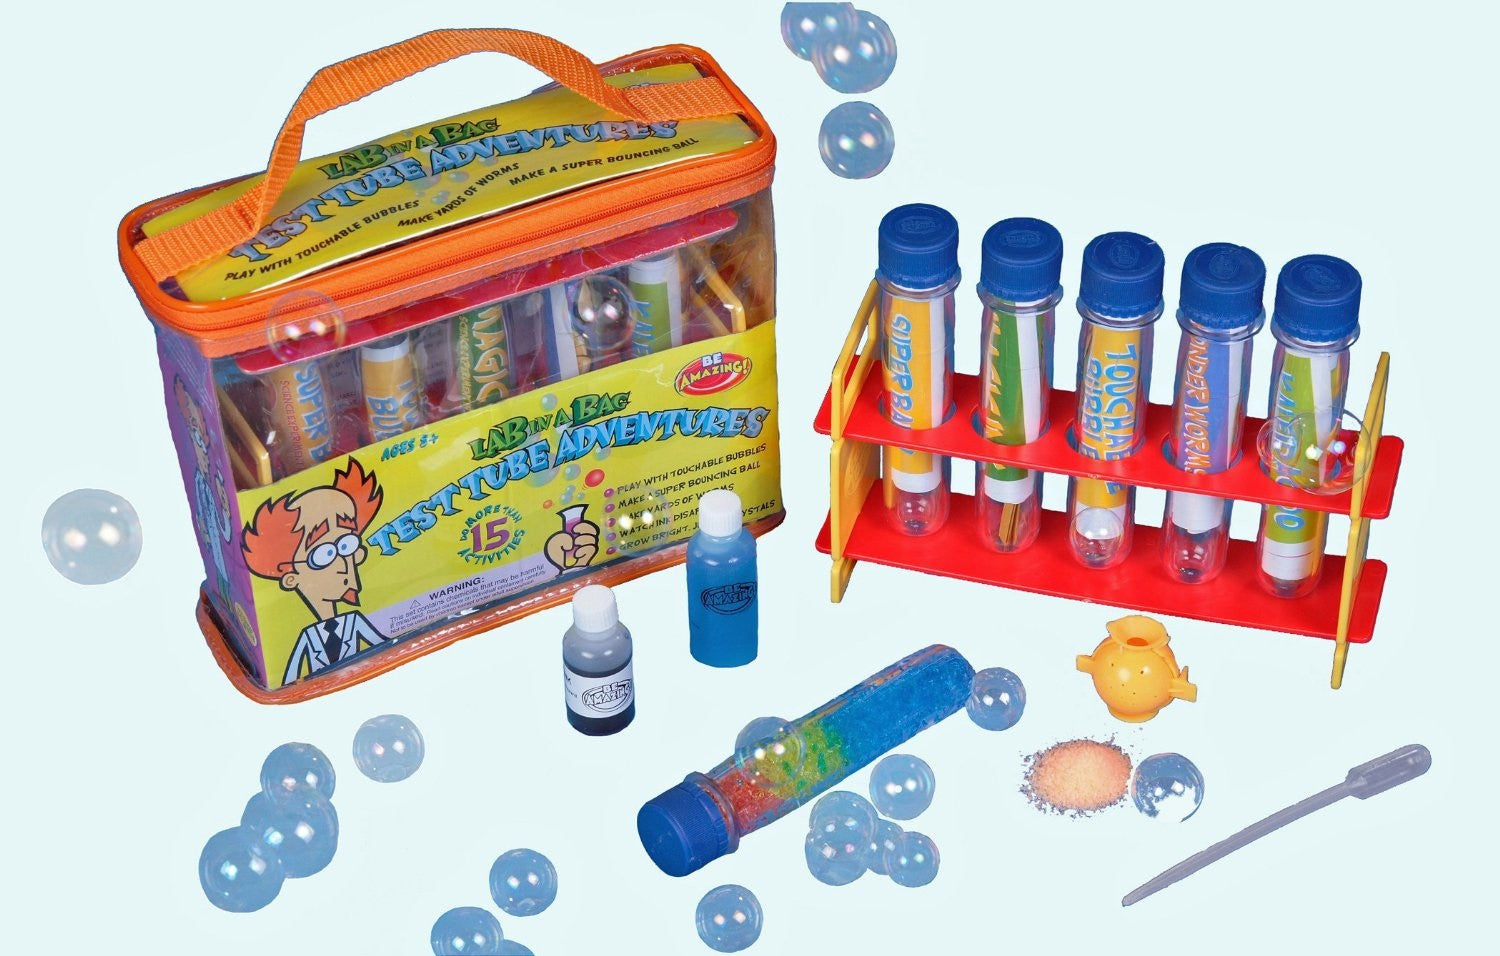 Be Amazing! Test Tube Adventures Science Activity Kit - Off The Wall Toys and Gifts